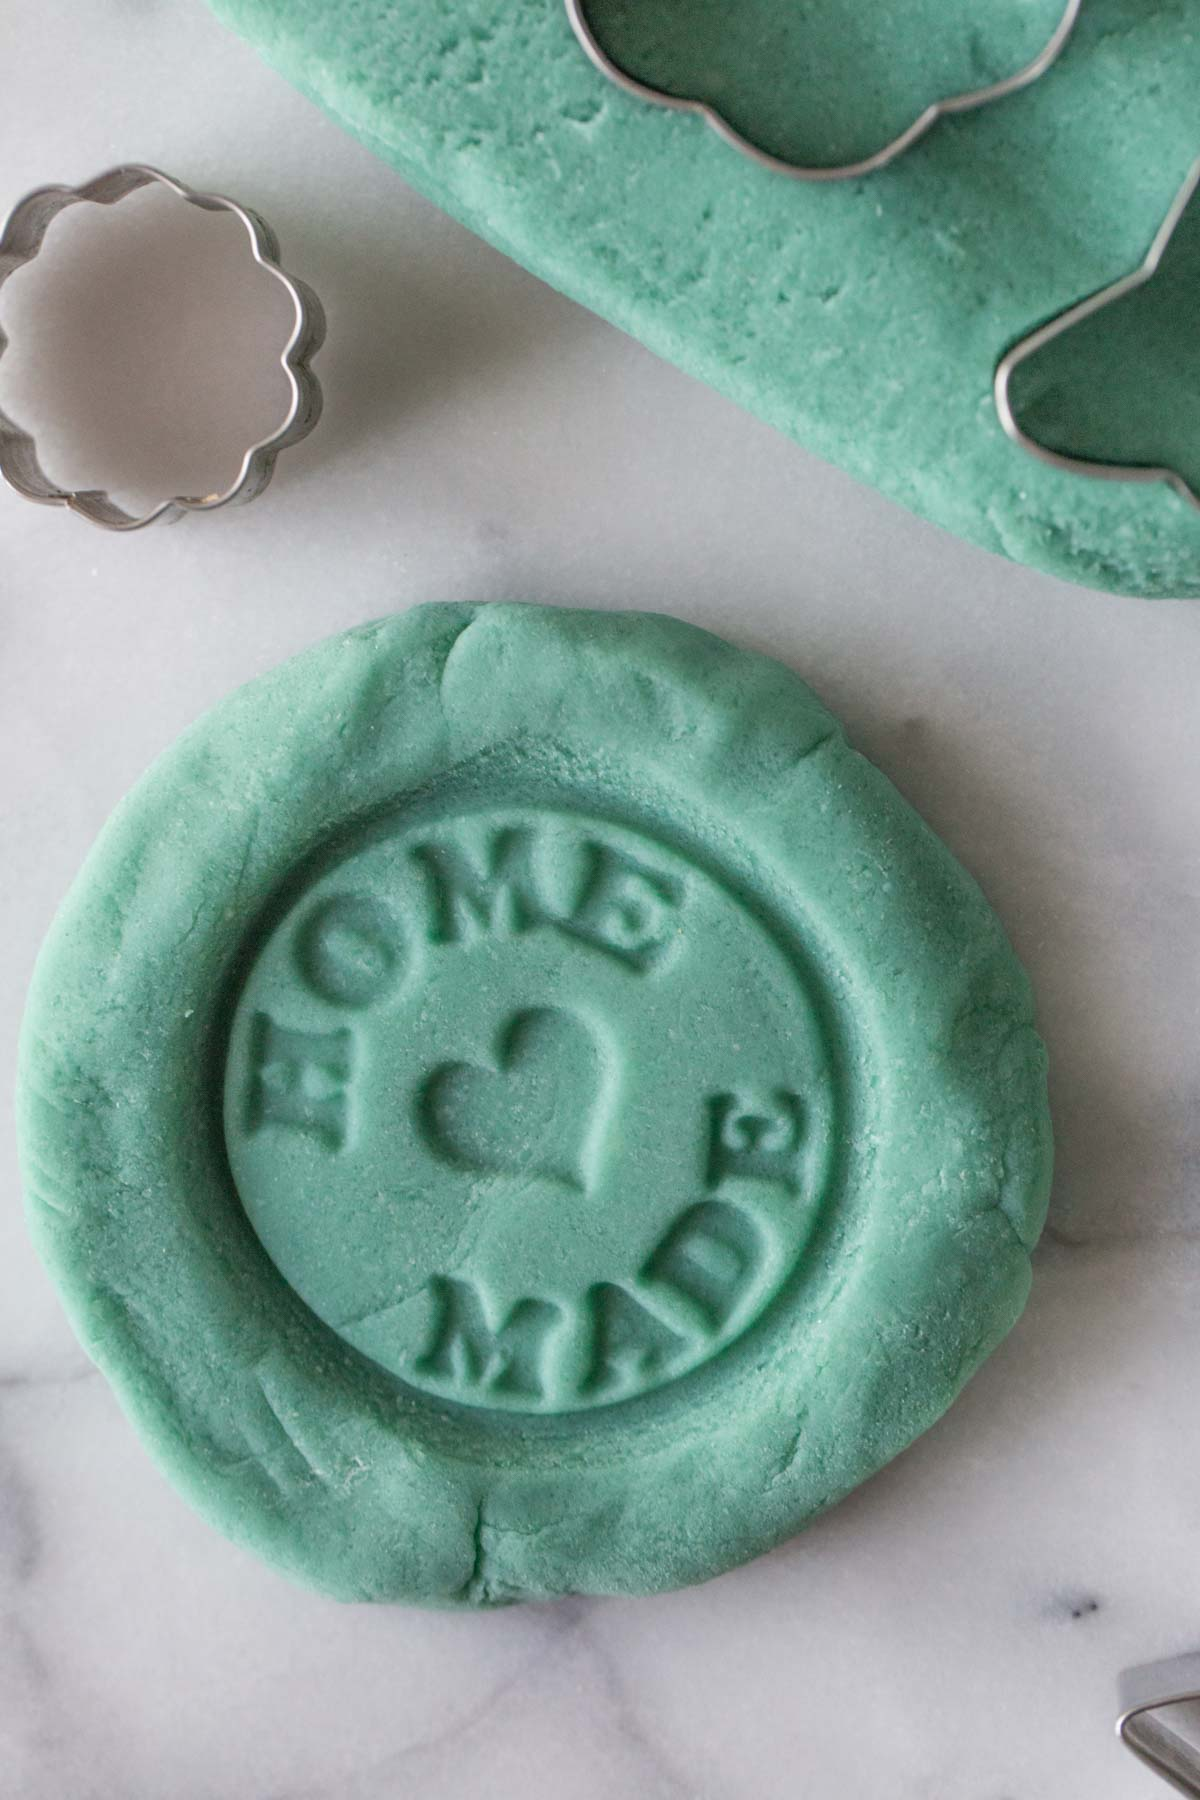 A close-up view of blue playdough with a homemade stamp pressed into the dough.